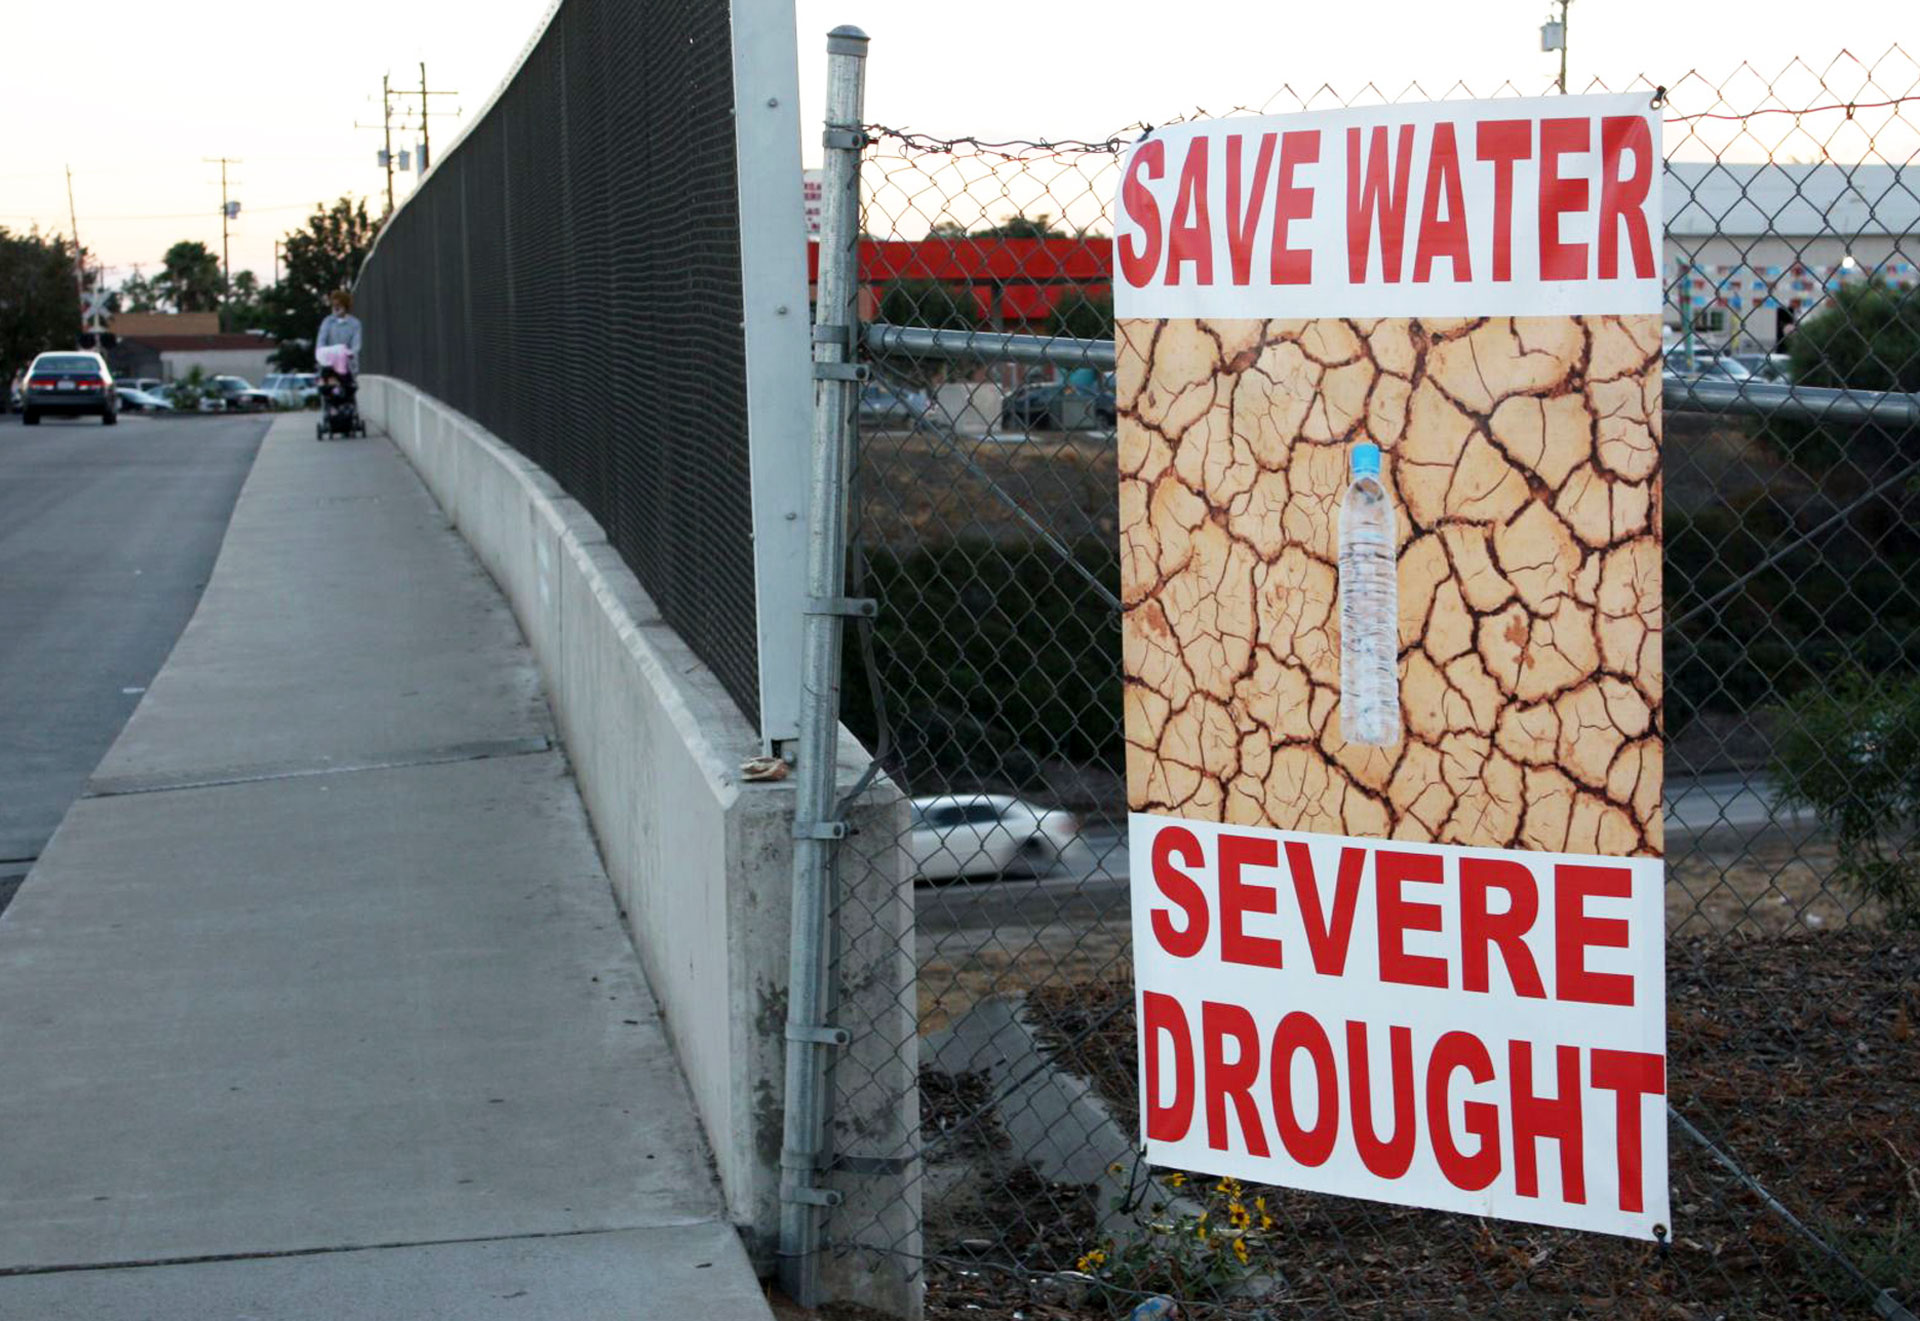 A banner urging residents to save water hangs in the city of Livingston. The town was supposed to cut water use by 32 percent, but so far it hasn't even hit the 10 percent mark.